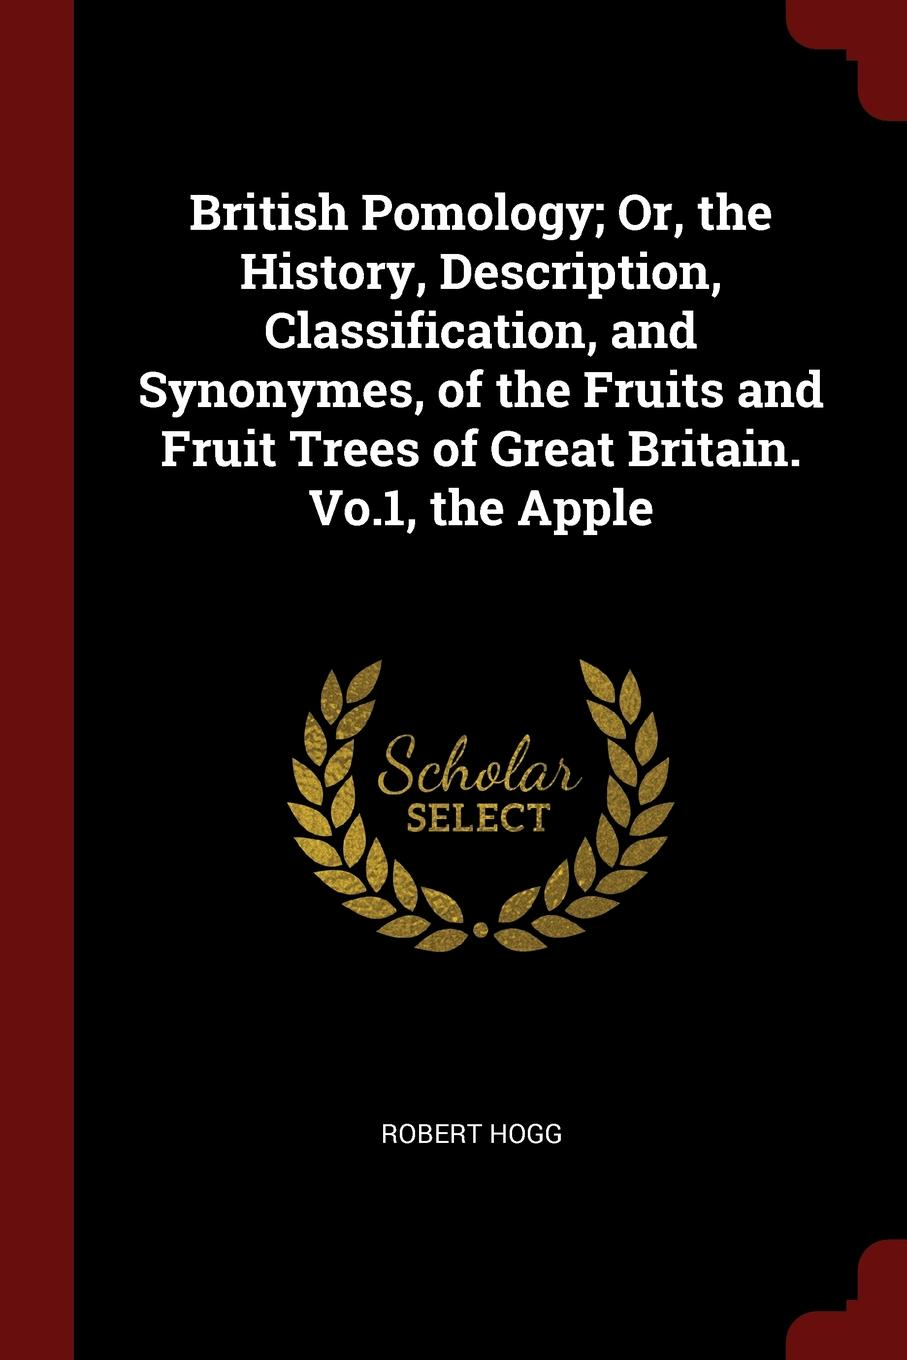 British Pomology; Or, the History, Description, Classification, and Synonymes, of the Fruits and Fruit Trees of Great Britain. Vo.1, the Apple. Robert Hogg